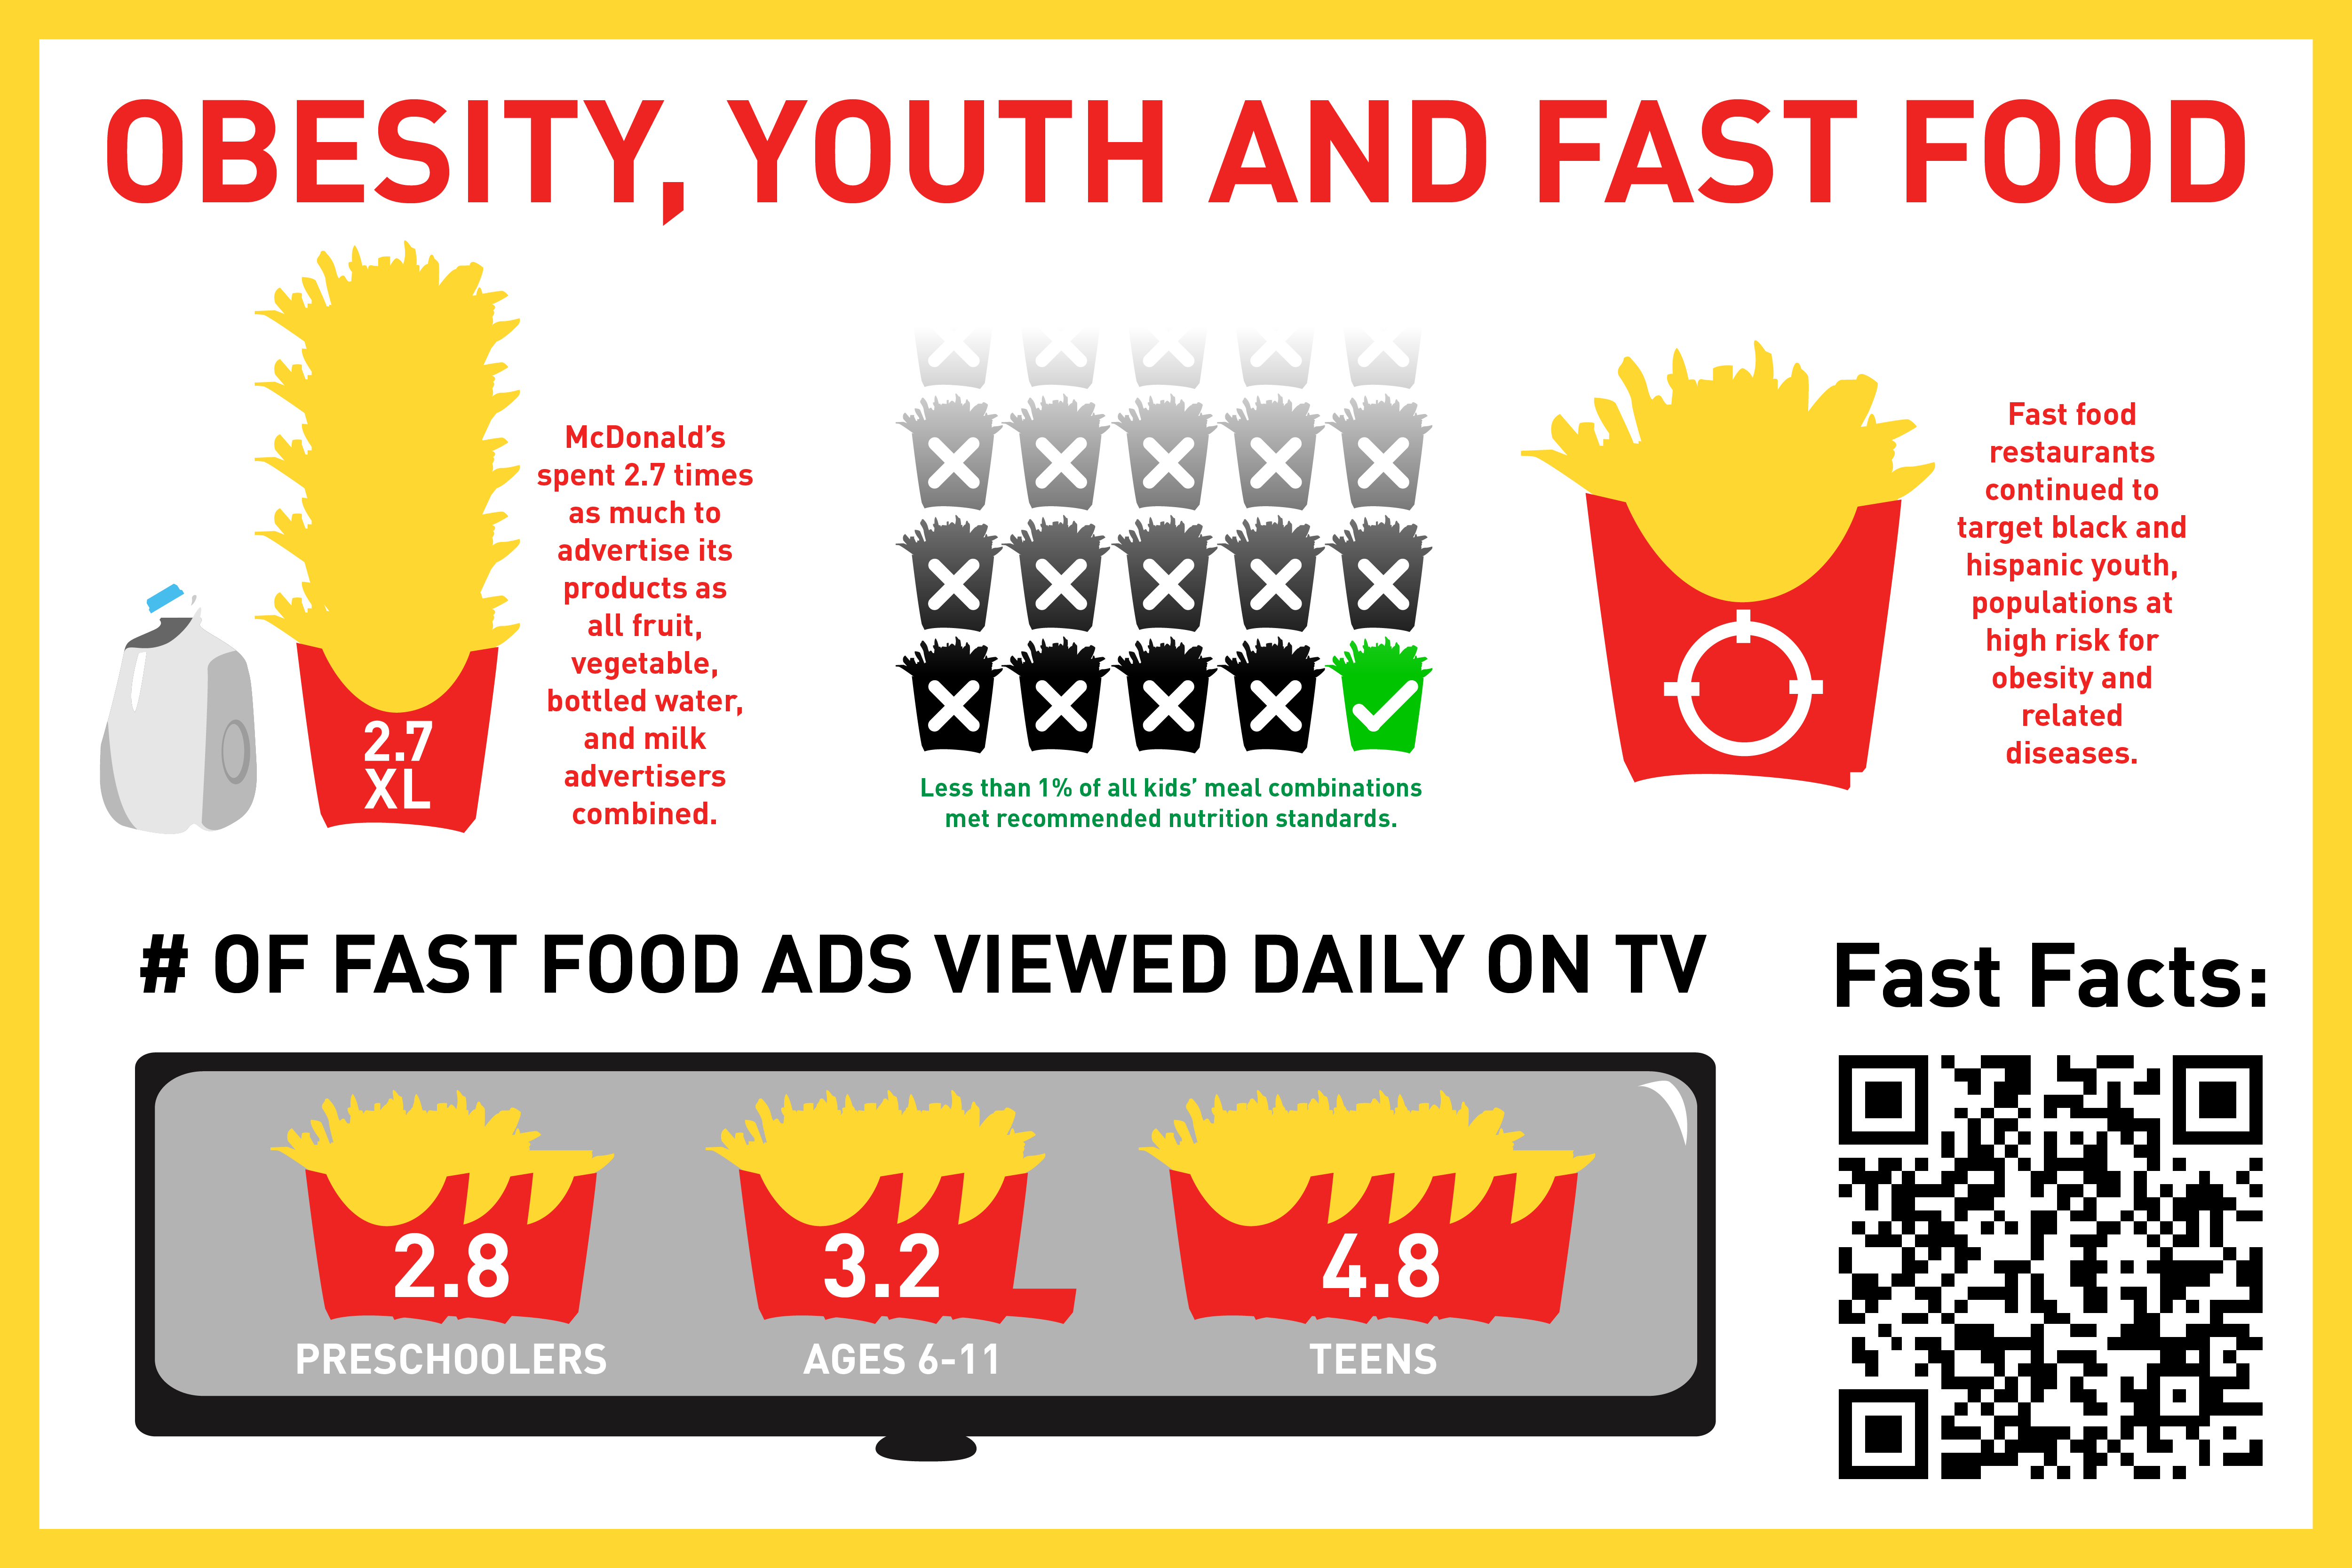 Food ads influence eating behavior